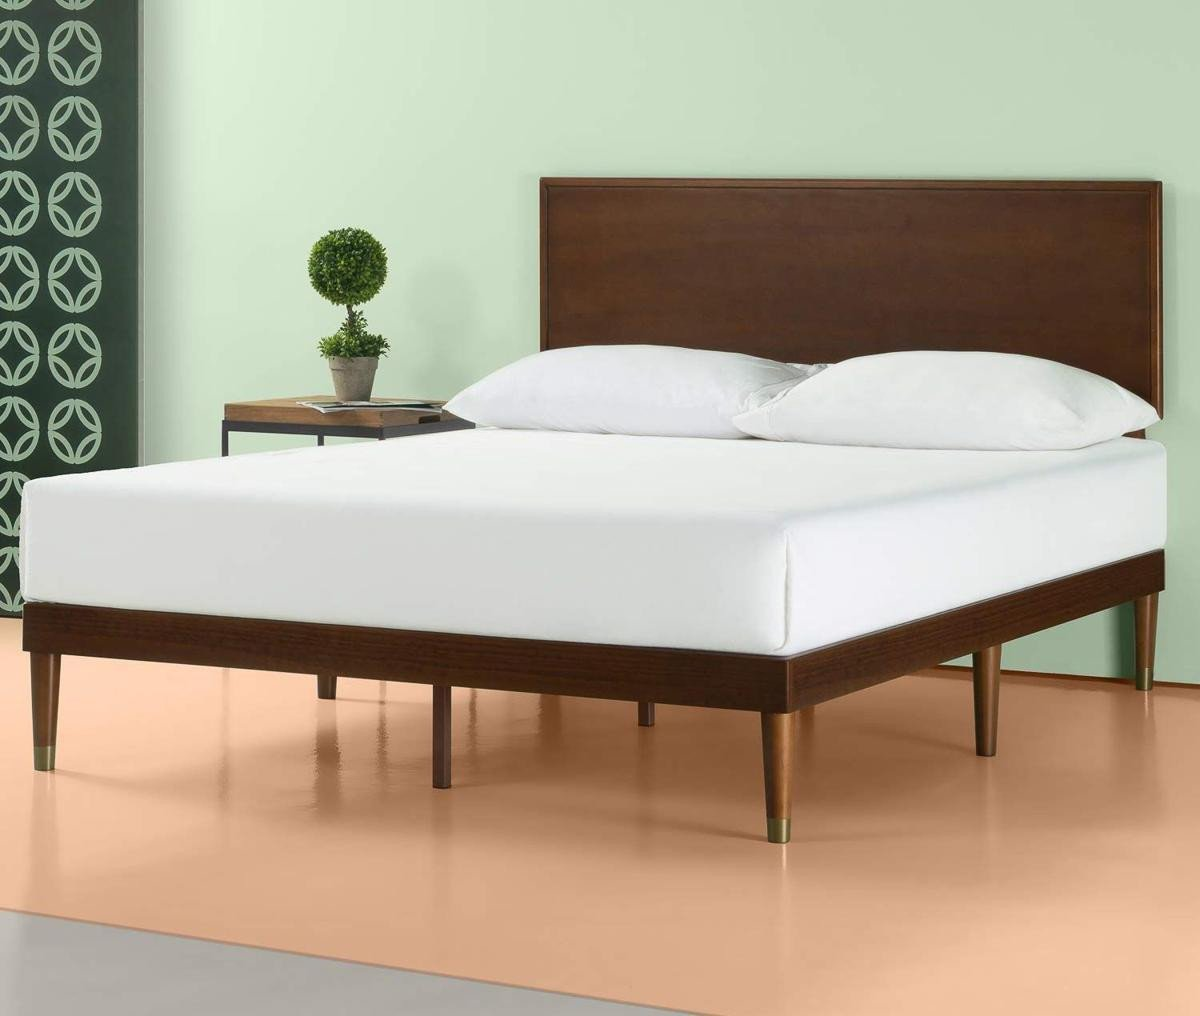 Best Quality Bedroom Furniture Fresh Get A West Elm Look for Under $300 with This Mid Century Bed